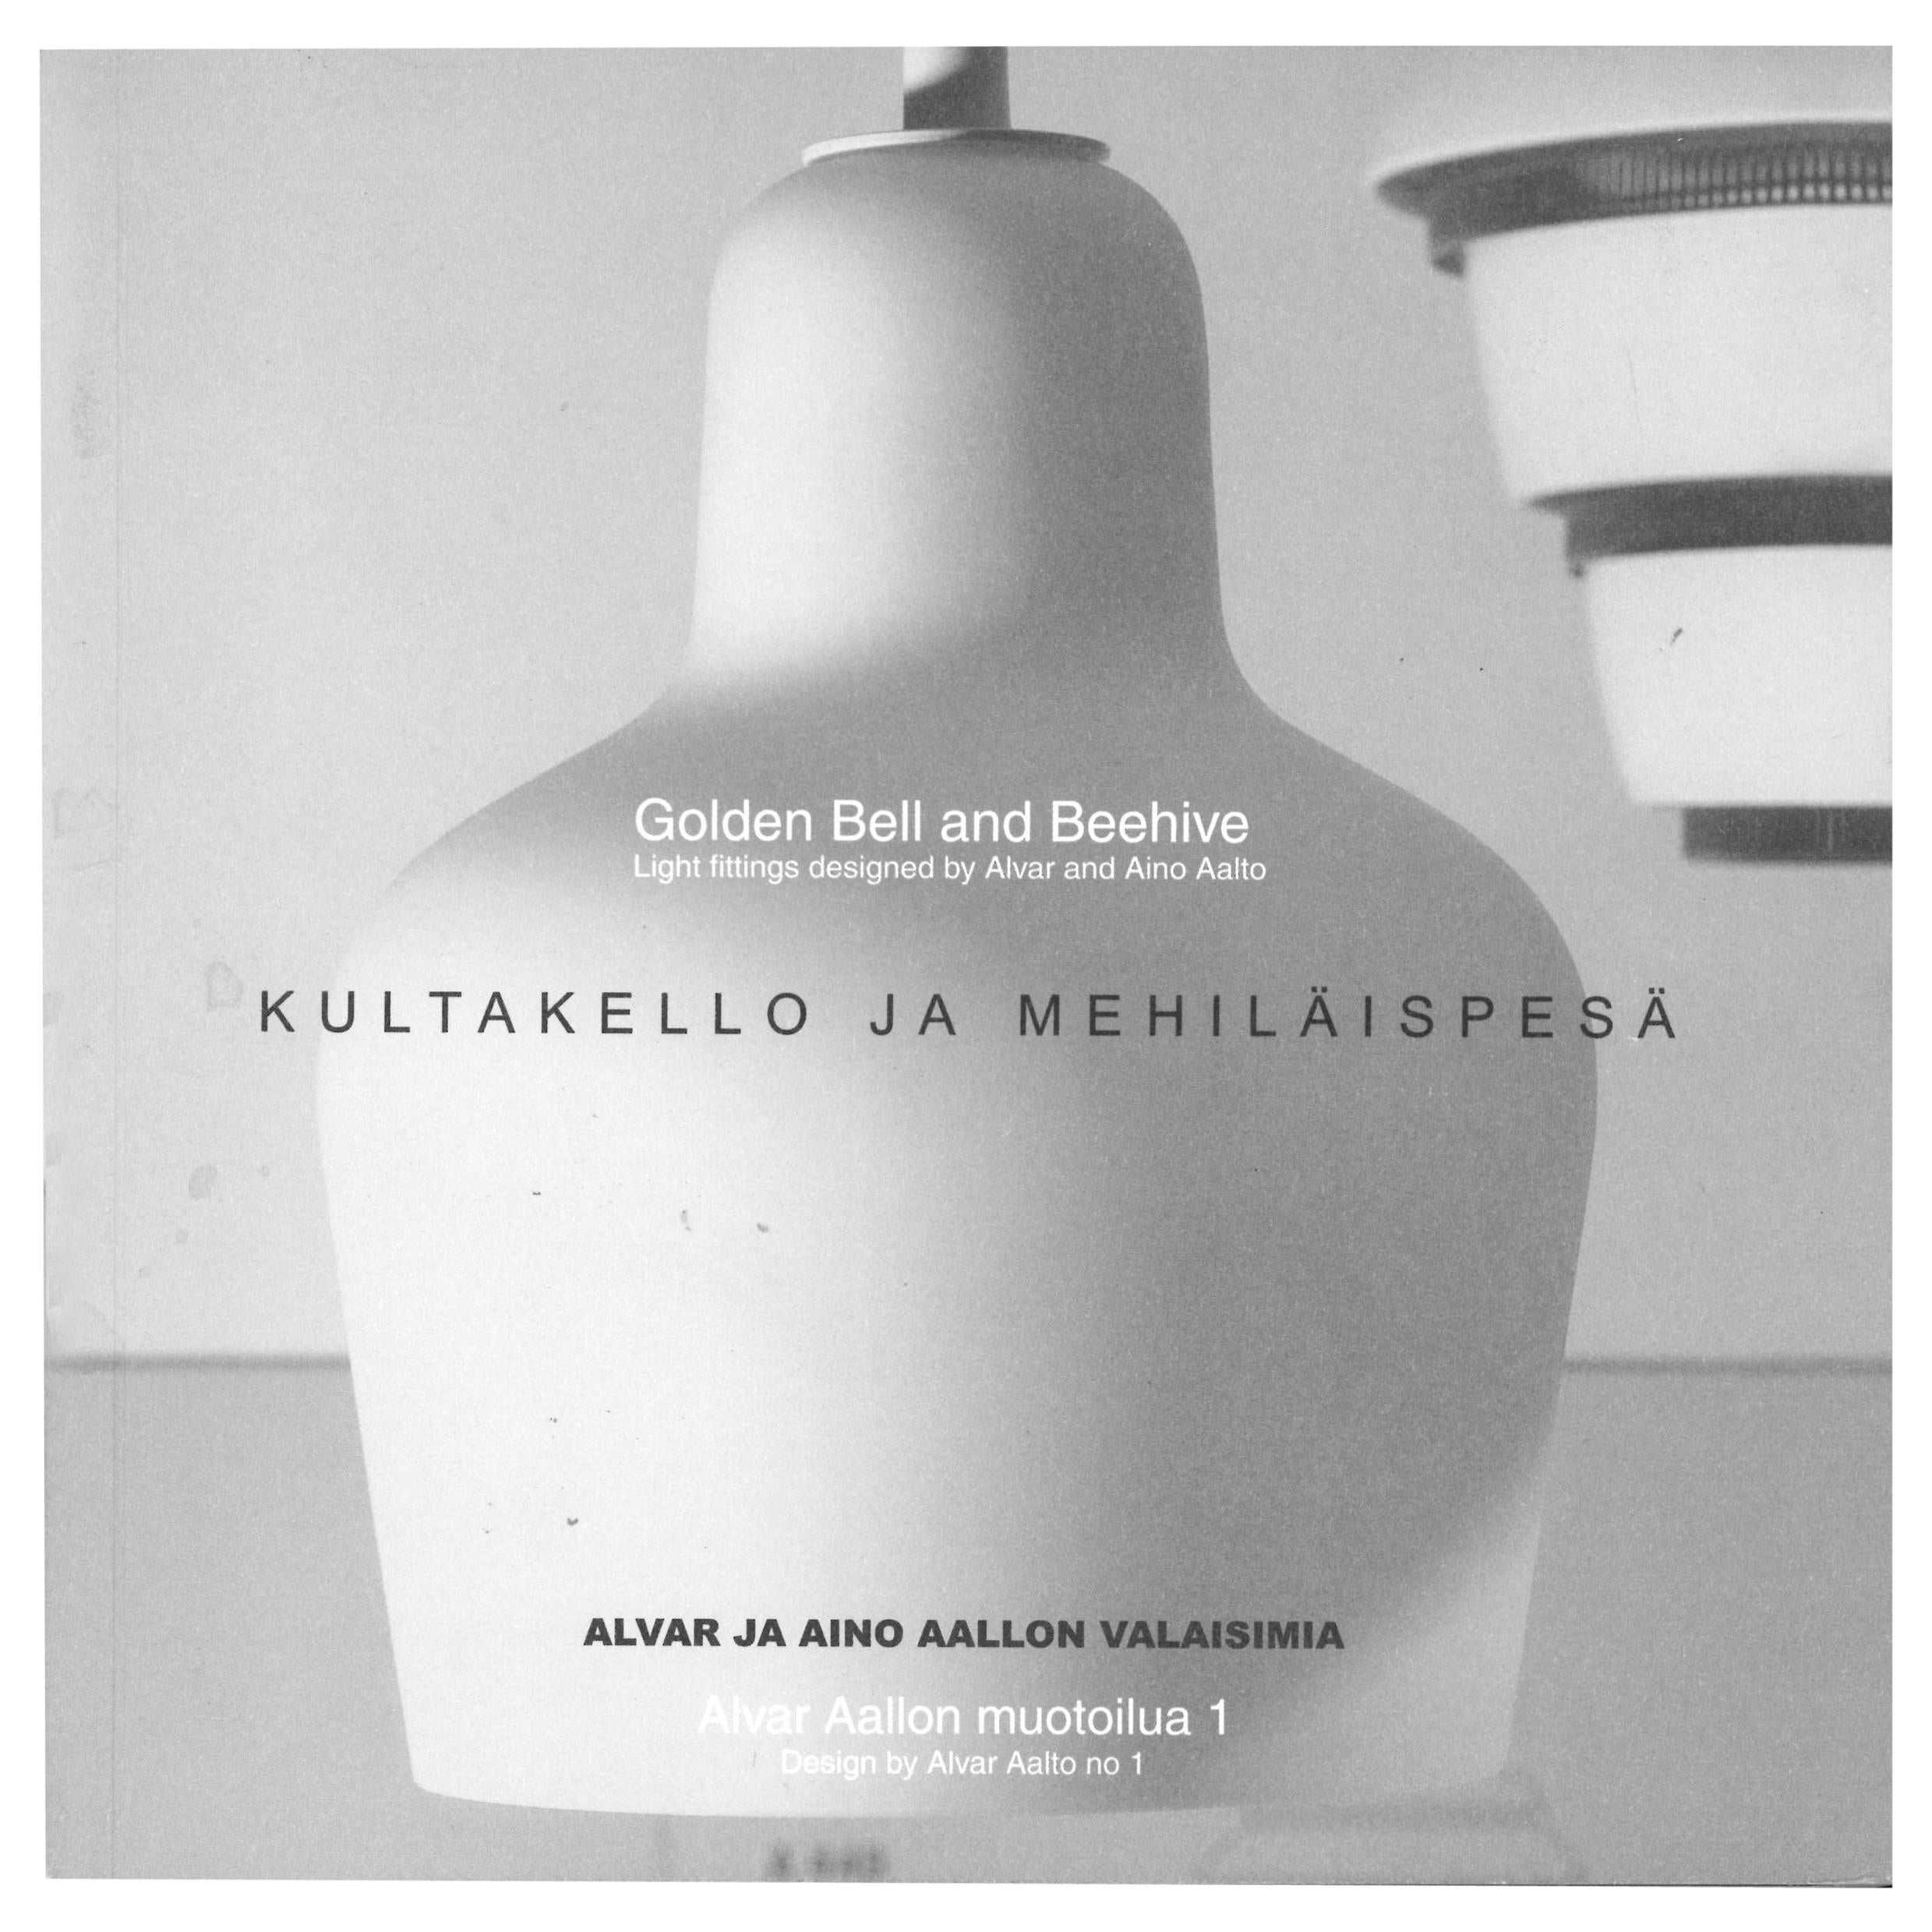 Golden Bell and Beehive Light Fittings Designed by ALVAR & AINO AALTO, Book